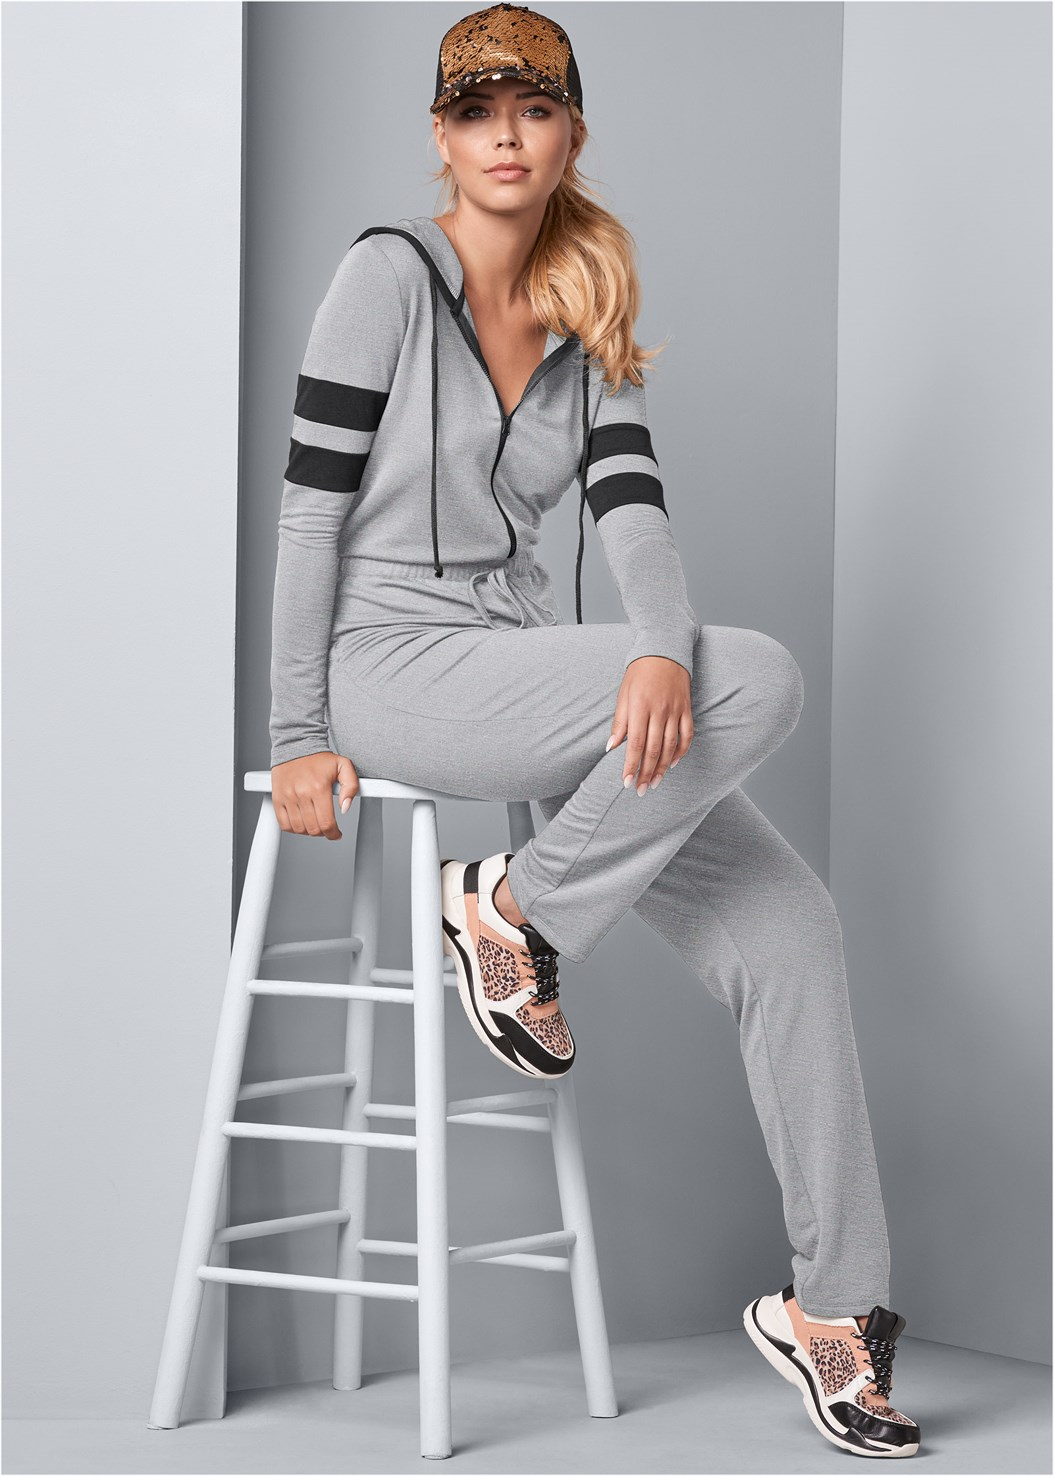 Stripe Lounge Jumpsuit,Seamless Underwire Bra,Animal Print Sneakers,Quilted Belt Bag,Woven Handbag